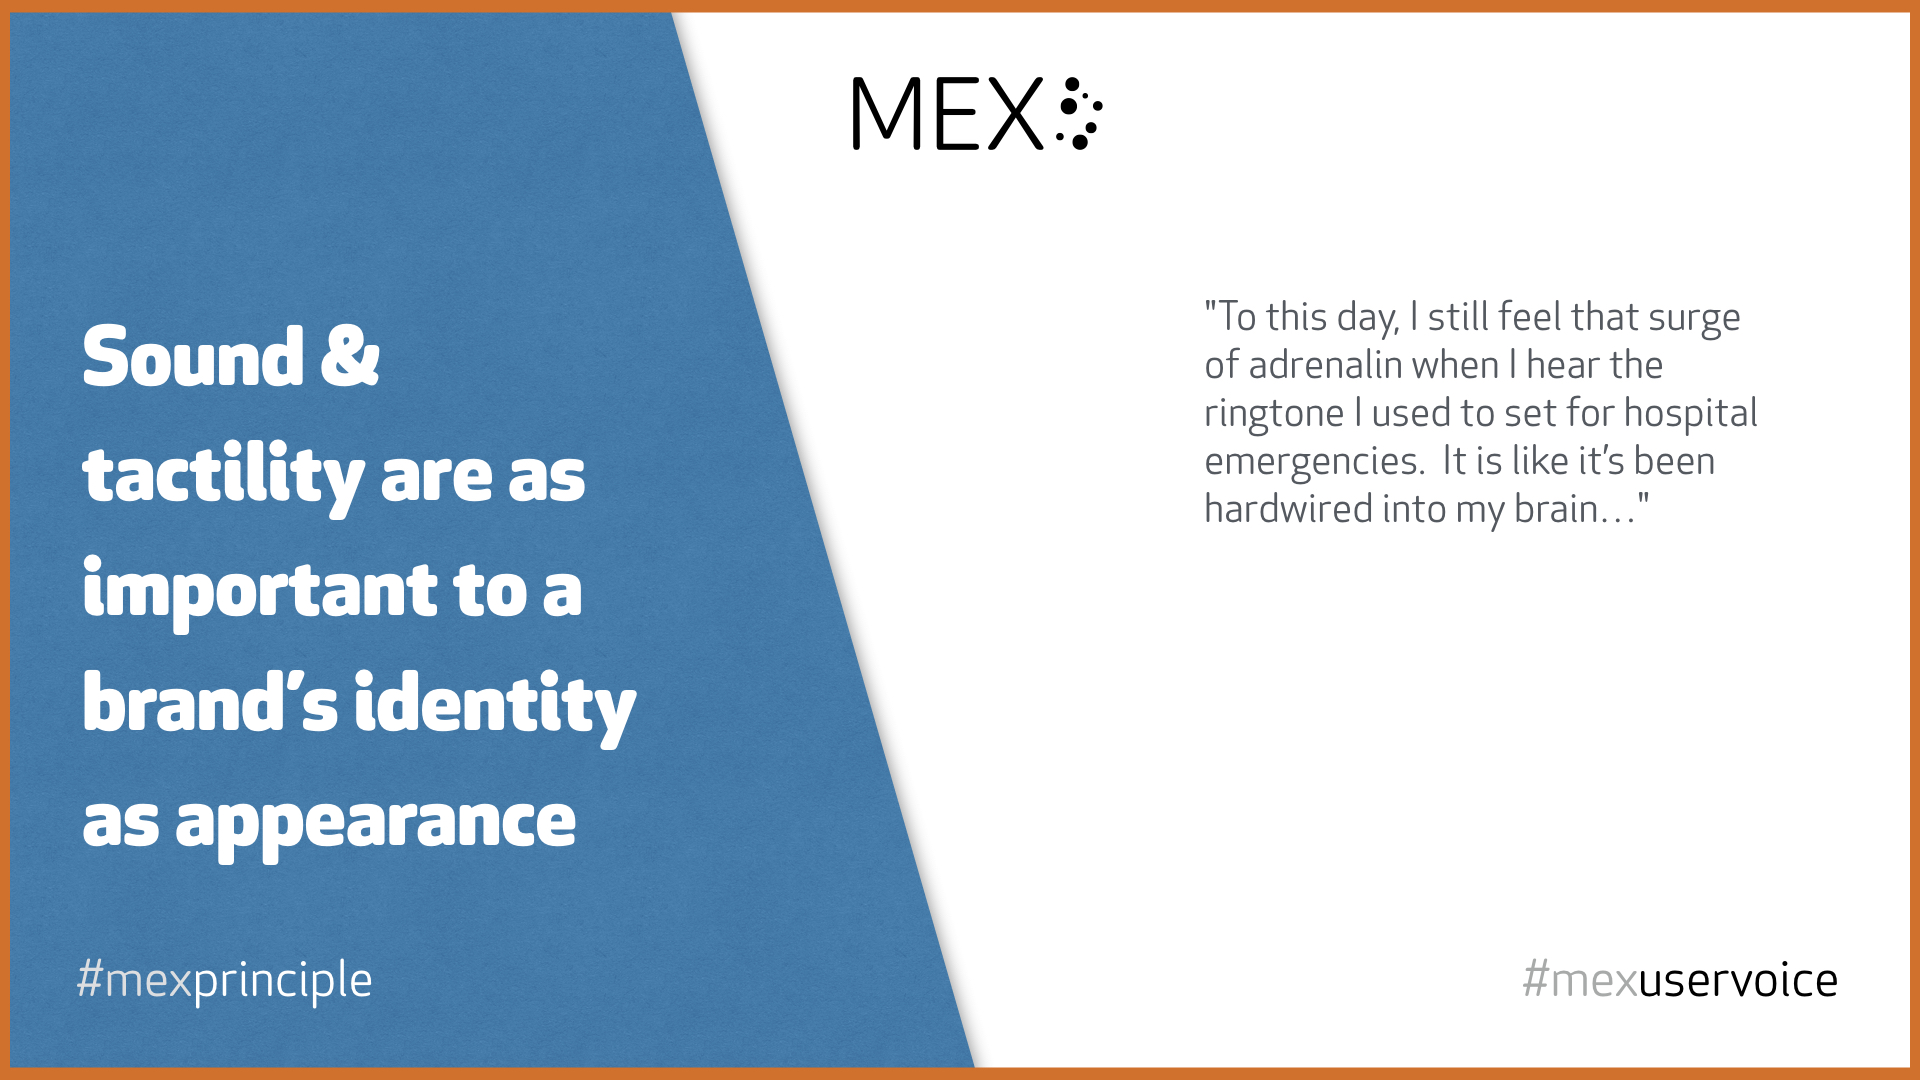 Sound & tactility are as important to a brand's identity as appearance #mexprinciple